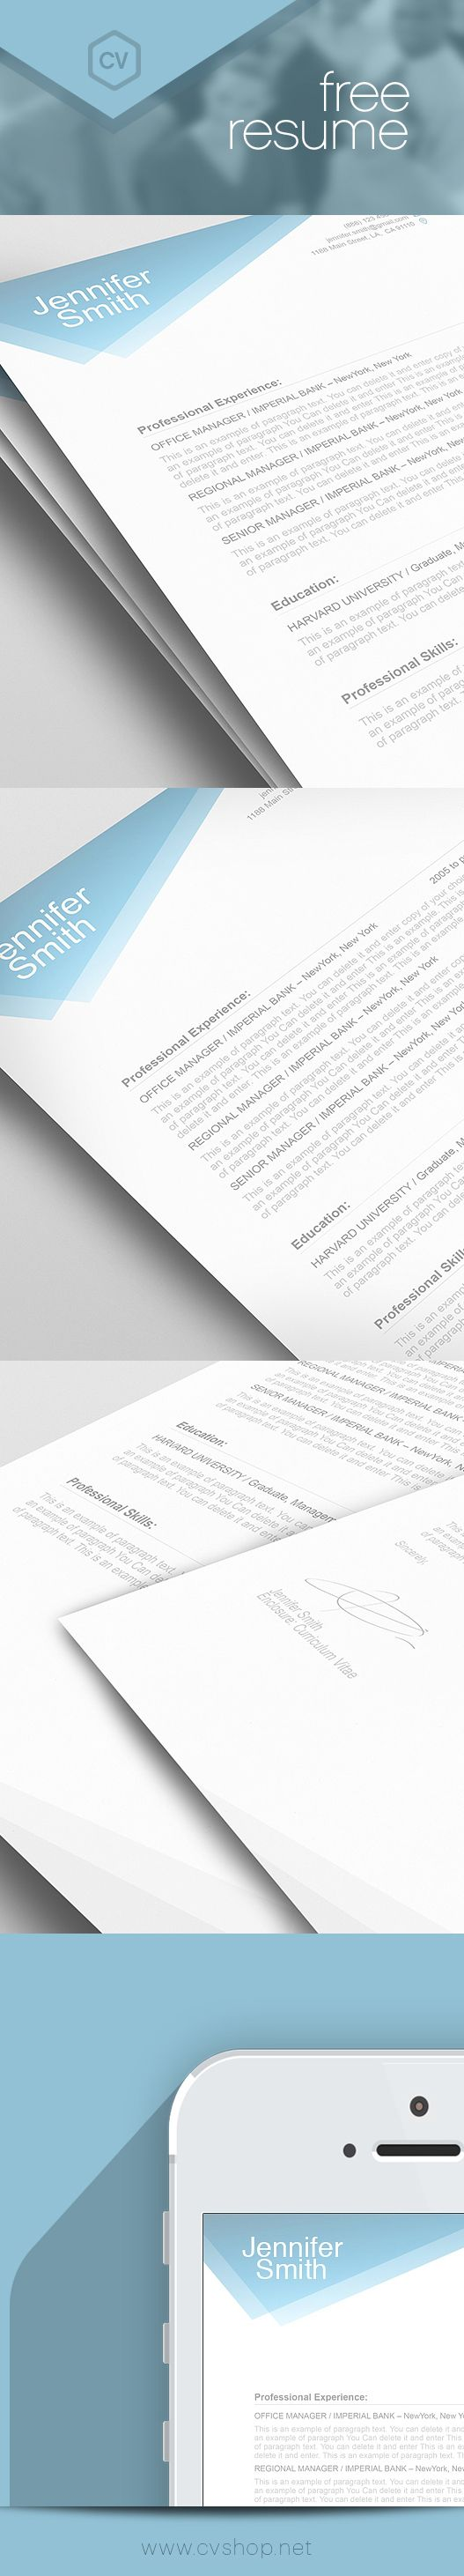 best images about resume templates a well resume template 100030 is for anyone looking to create a professional resume and cover letter ease edit in ms word and iwork pages